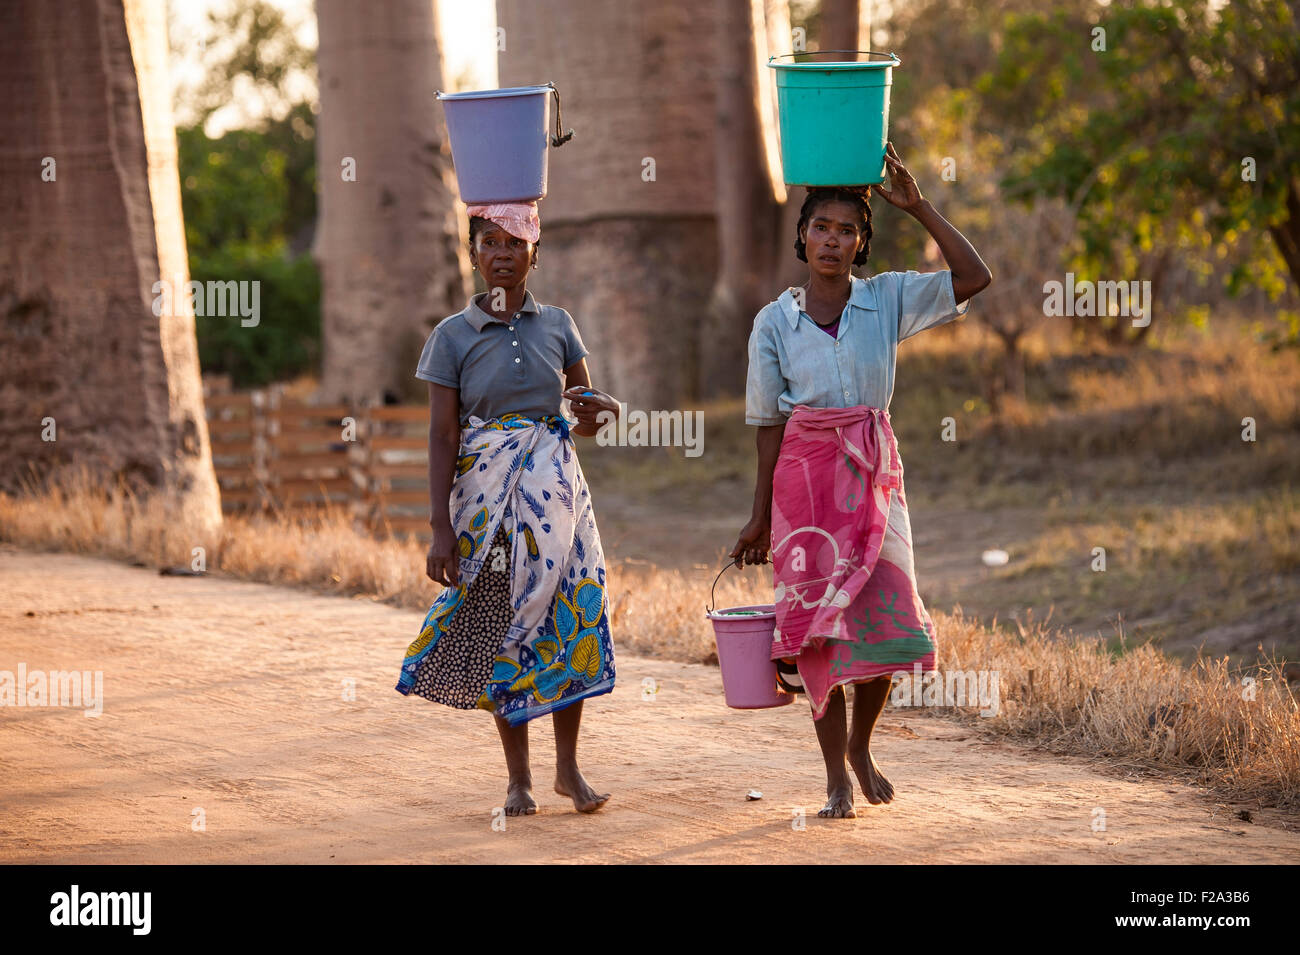 Two women carrying a bucket on their head in Baobaballee, Morondava, Madagascar - Stock Image